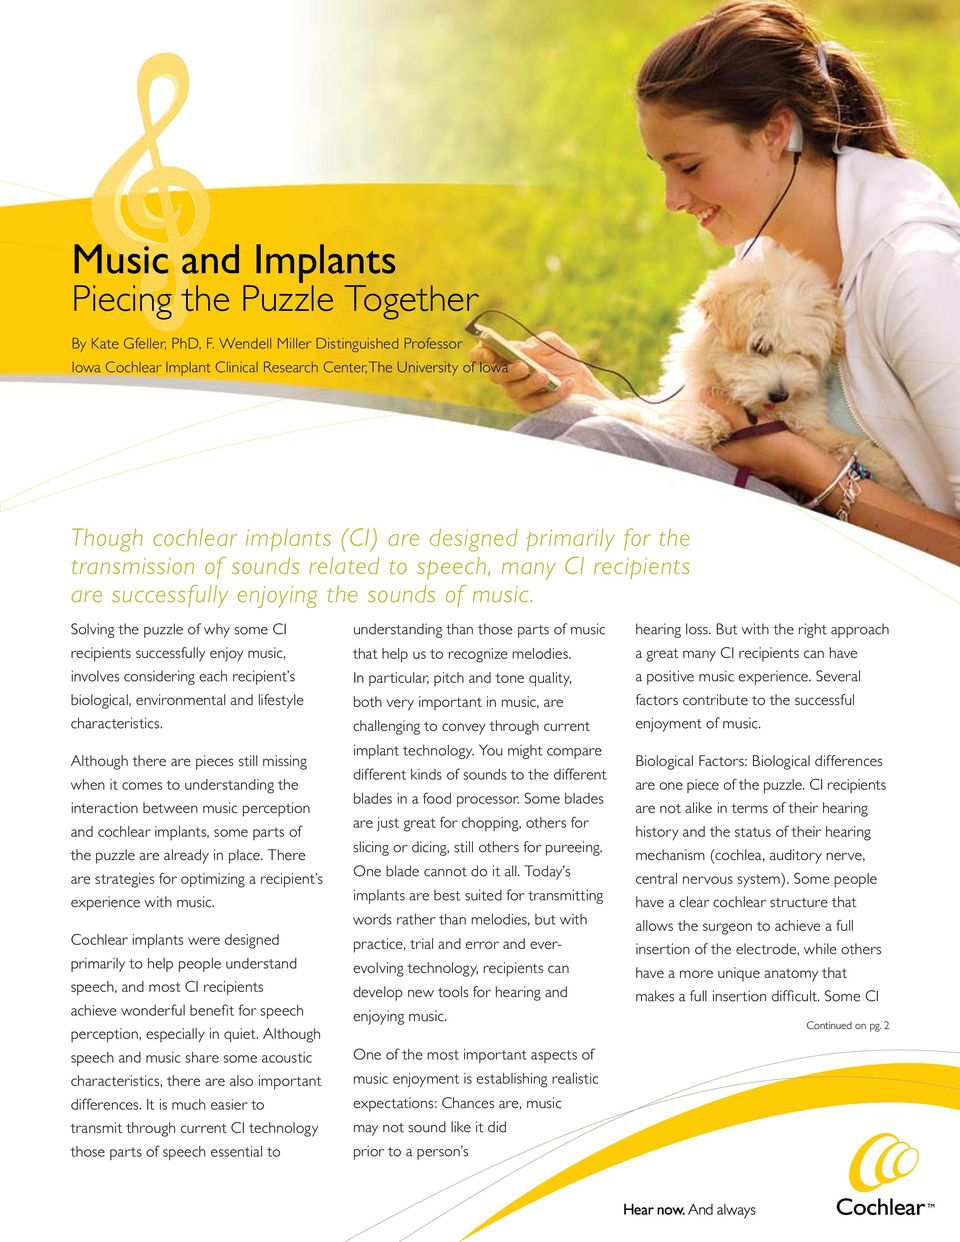 related to speech, many CI recipients are successfully enjoying the sounds of music.